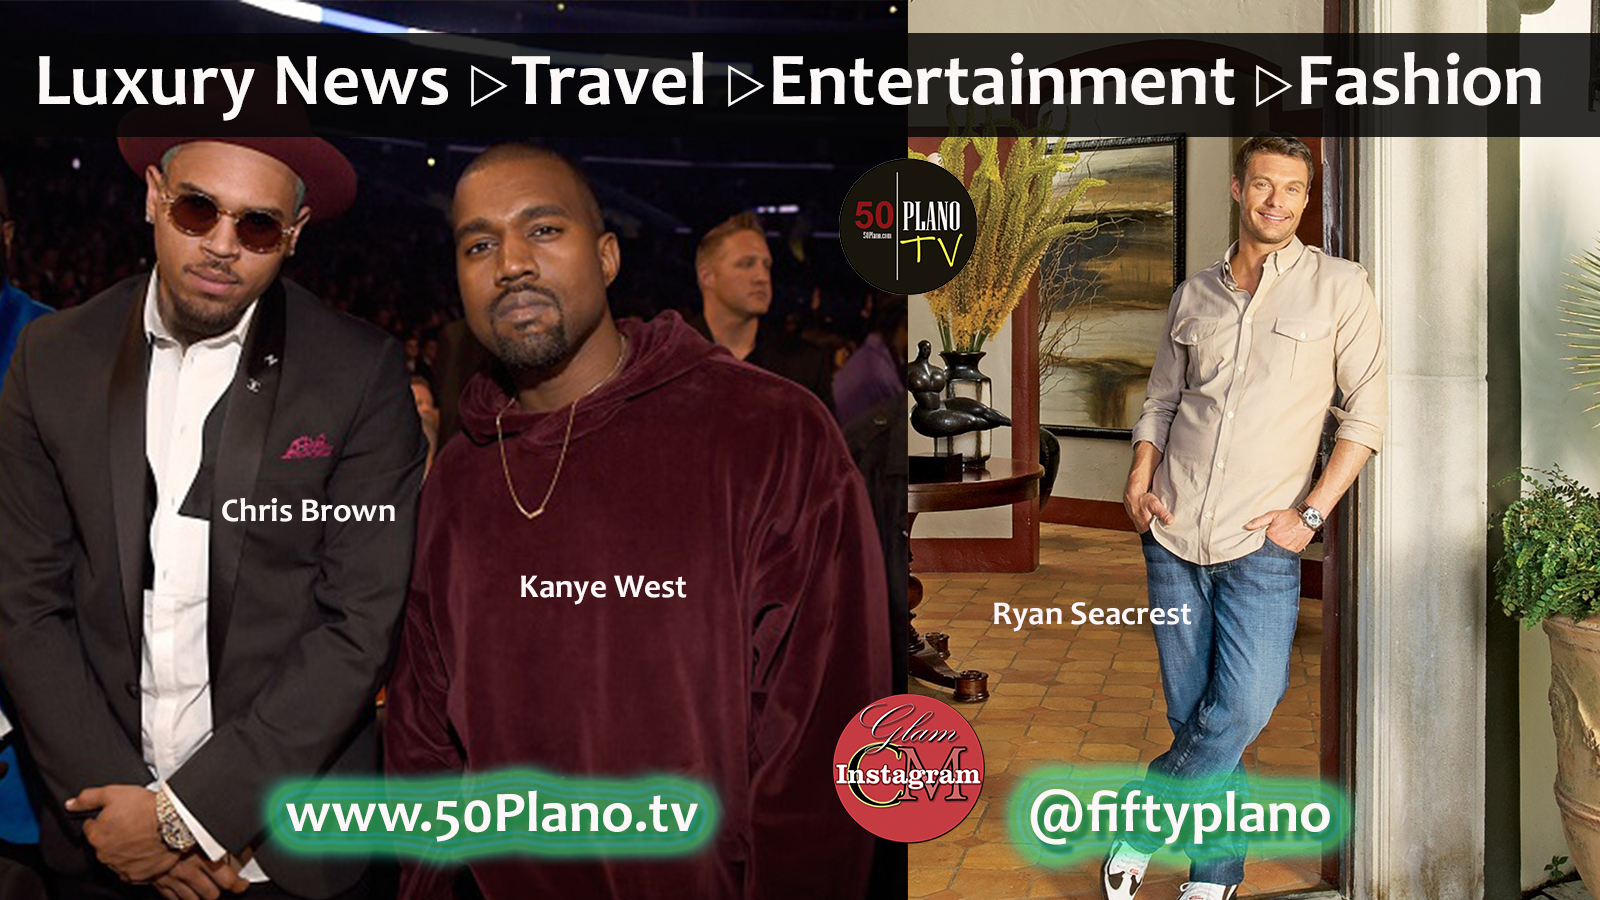 What kind of pimped out monster truck did Kanye give singer Chris Brown? Did you see that impressive L.A. palace Ryan Seacrest is selling?